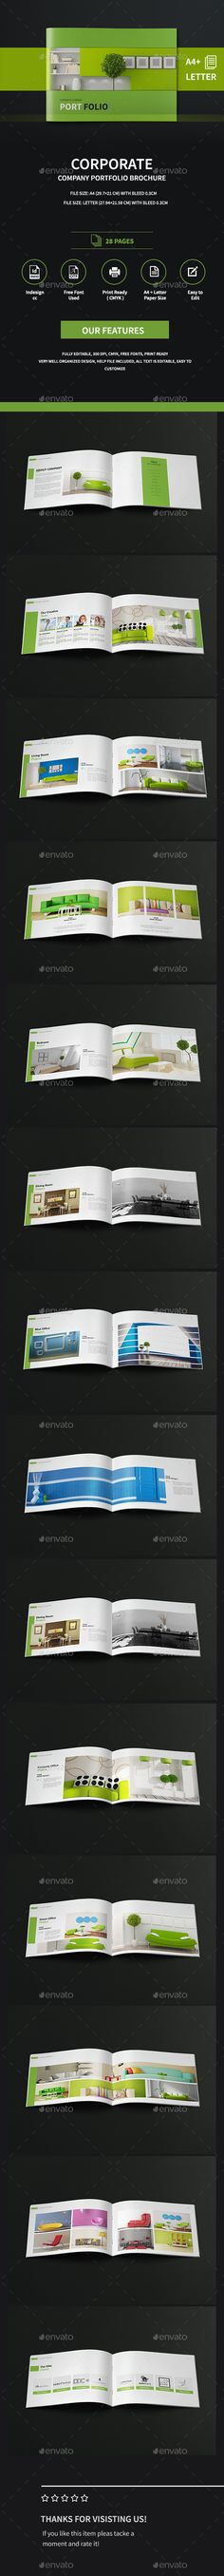 Landscape Company Portfolio Brochure A4 And Letter Template InDesign INDD. Download here: http://graphicriver.net/item/landscape-company-portfolio-brochure-a4-and-letter-/16344768?ref=ksioks